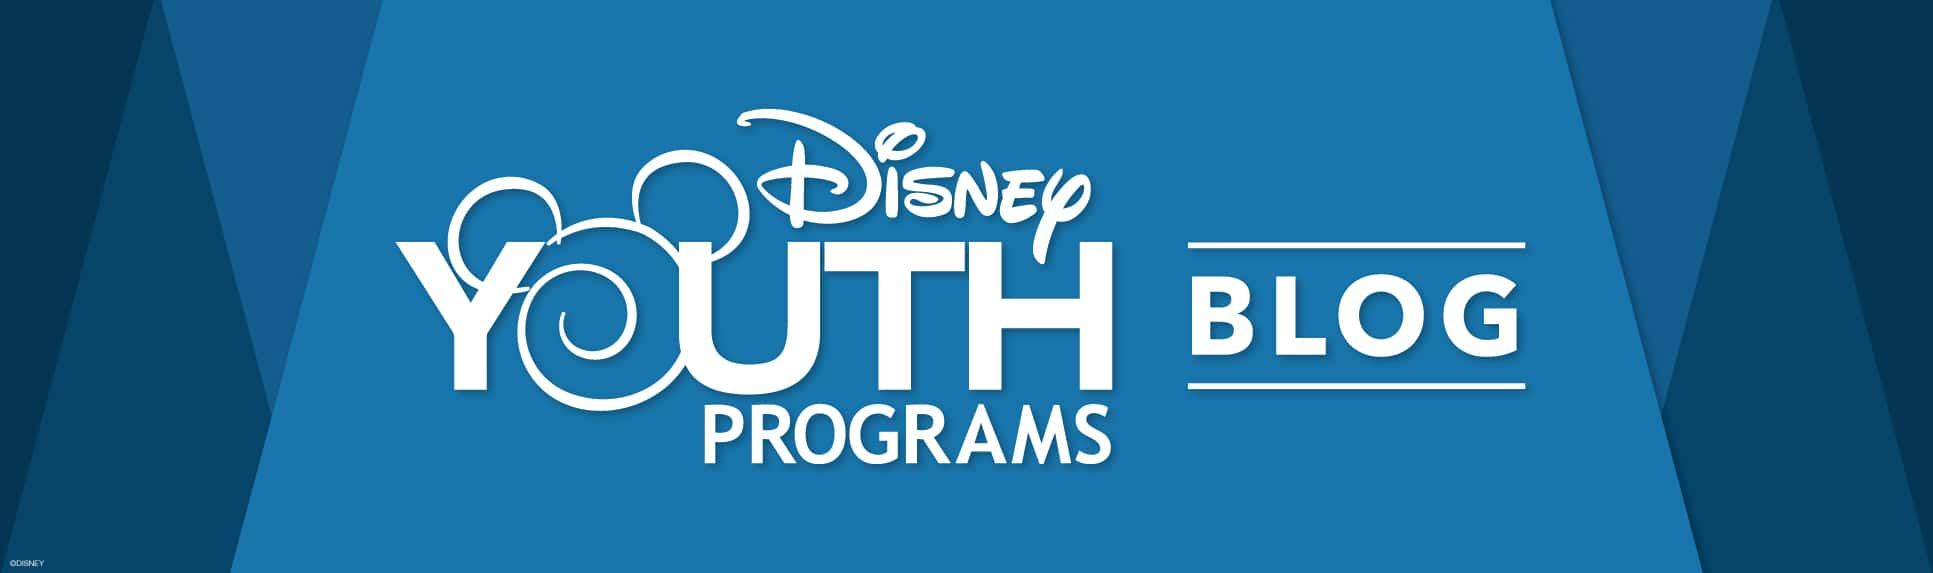 Disney Youth Programs Blog